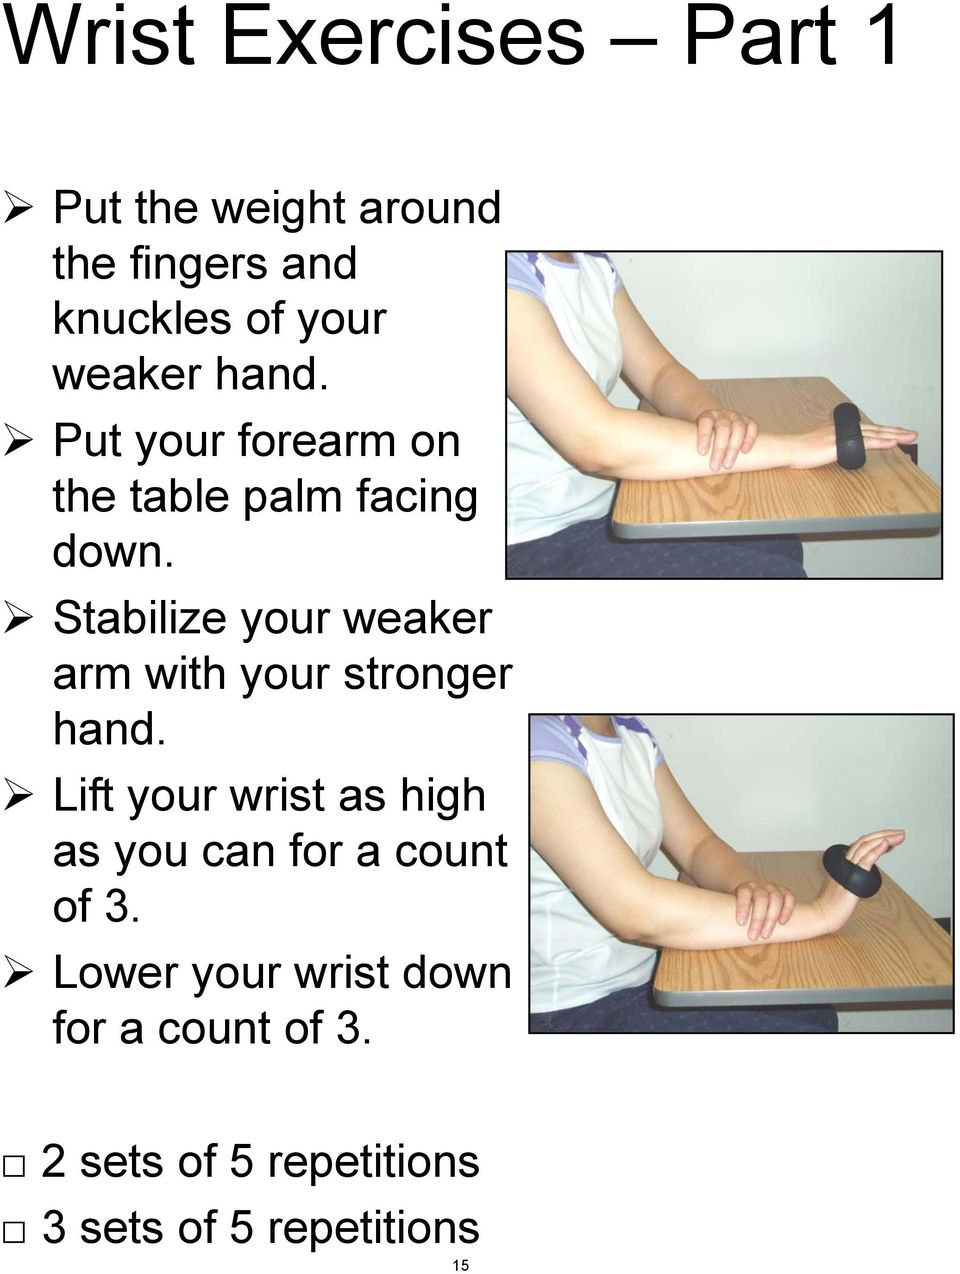 Stabilize your weaker arm with your stronger hand.